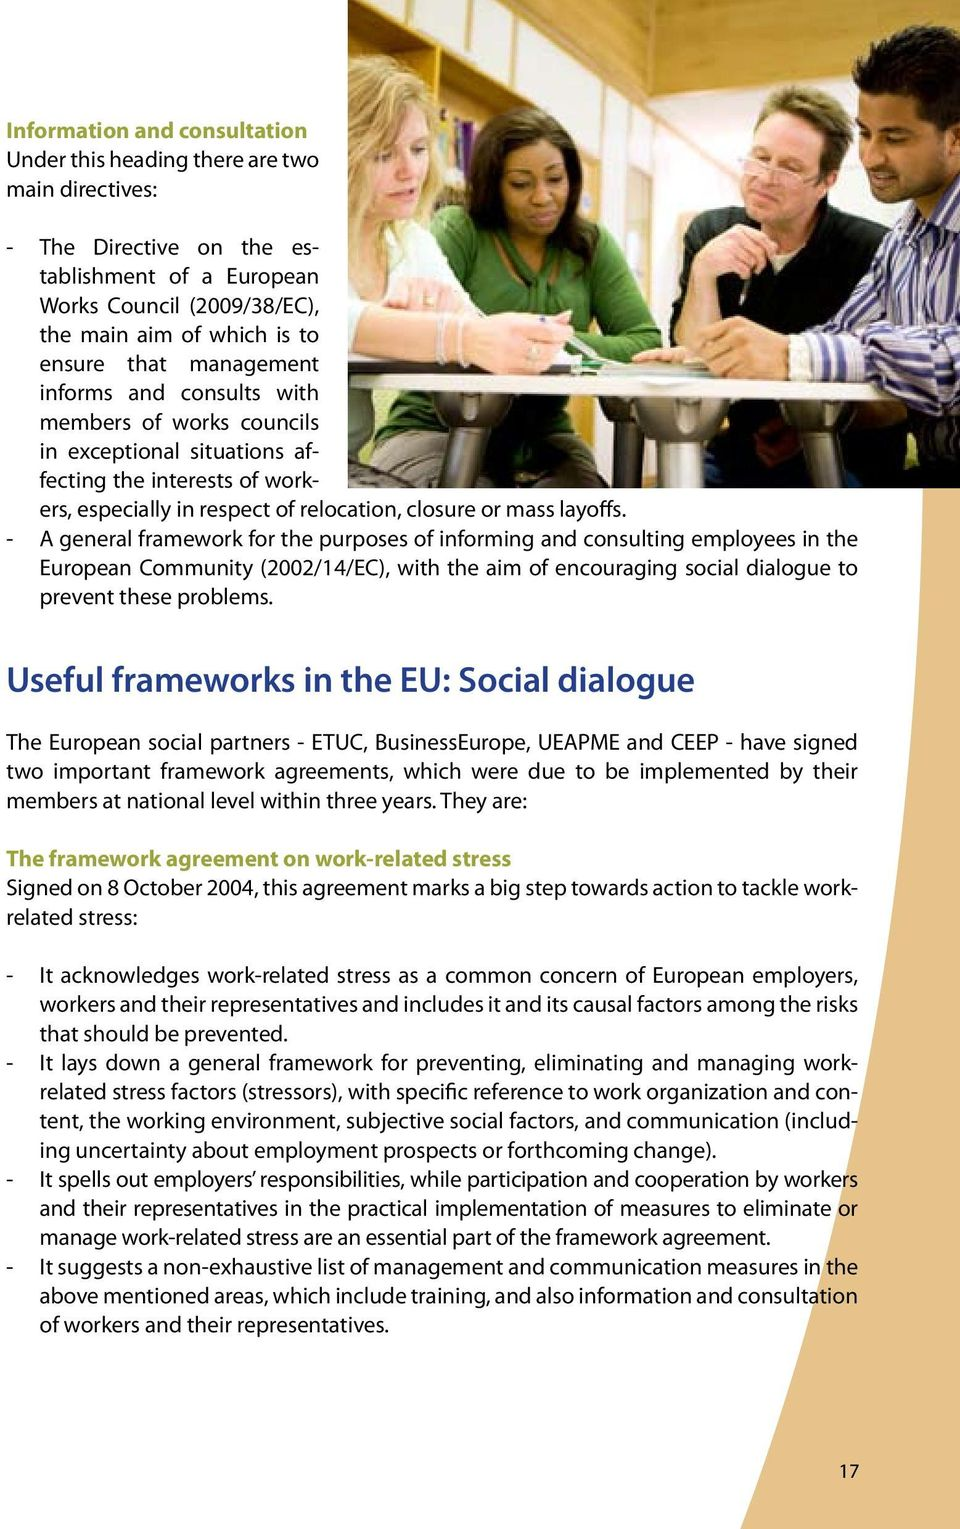 - A general framework for the purposes of informing and consulting employees in the European Community (2002/14/EC), with the aim of encouraging social dialogue to prevent these problems.